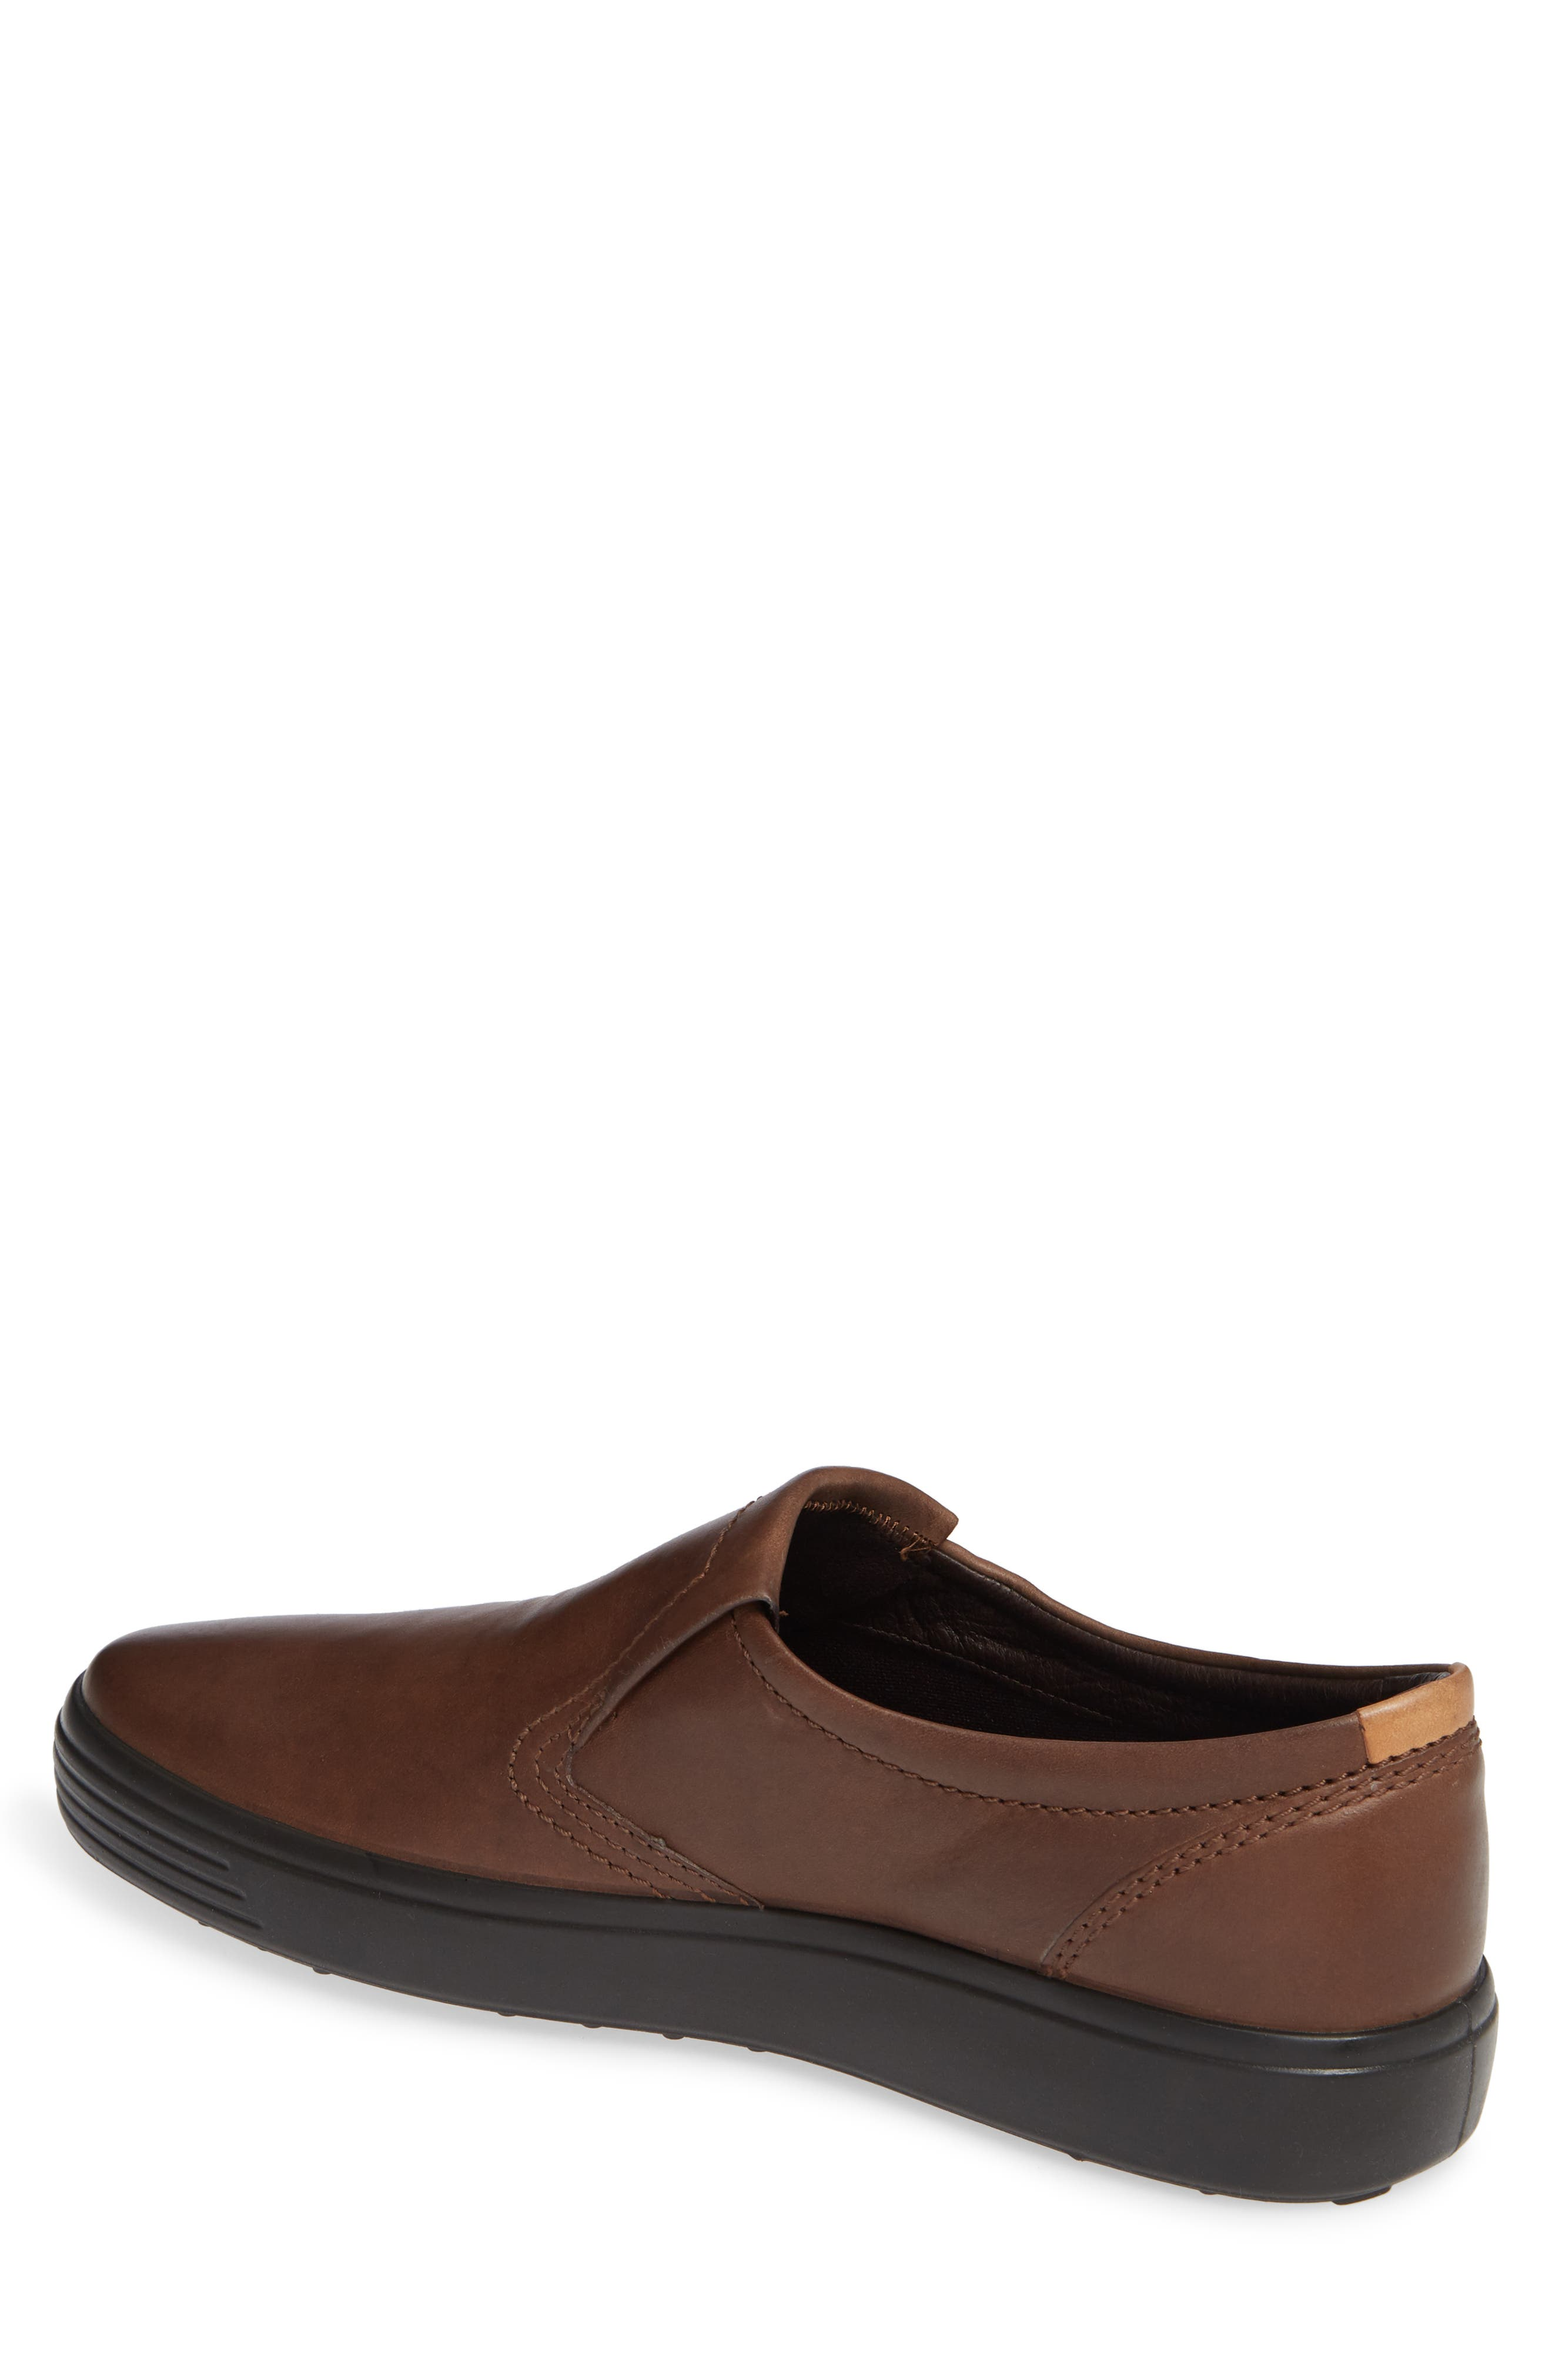 'Soft 7' Slip-On,                             Alternate thumbnail 2, color,                             BROWN LEATHER